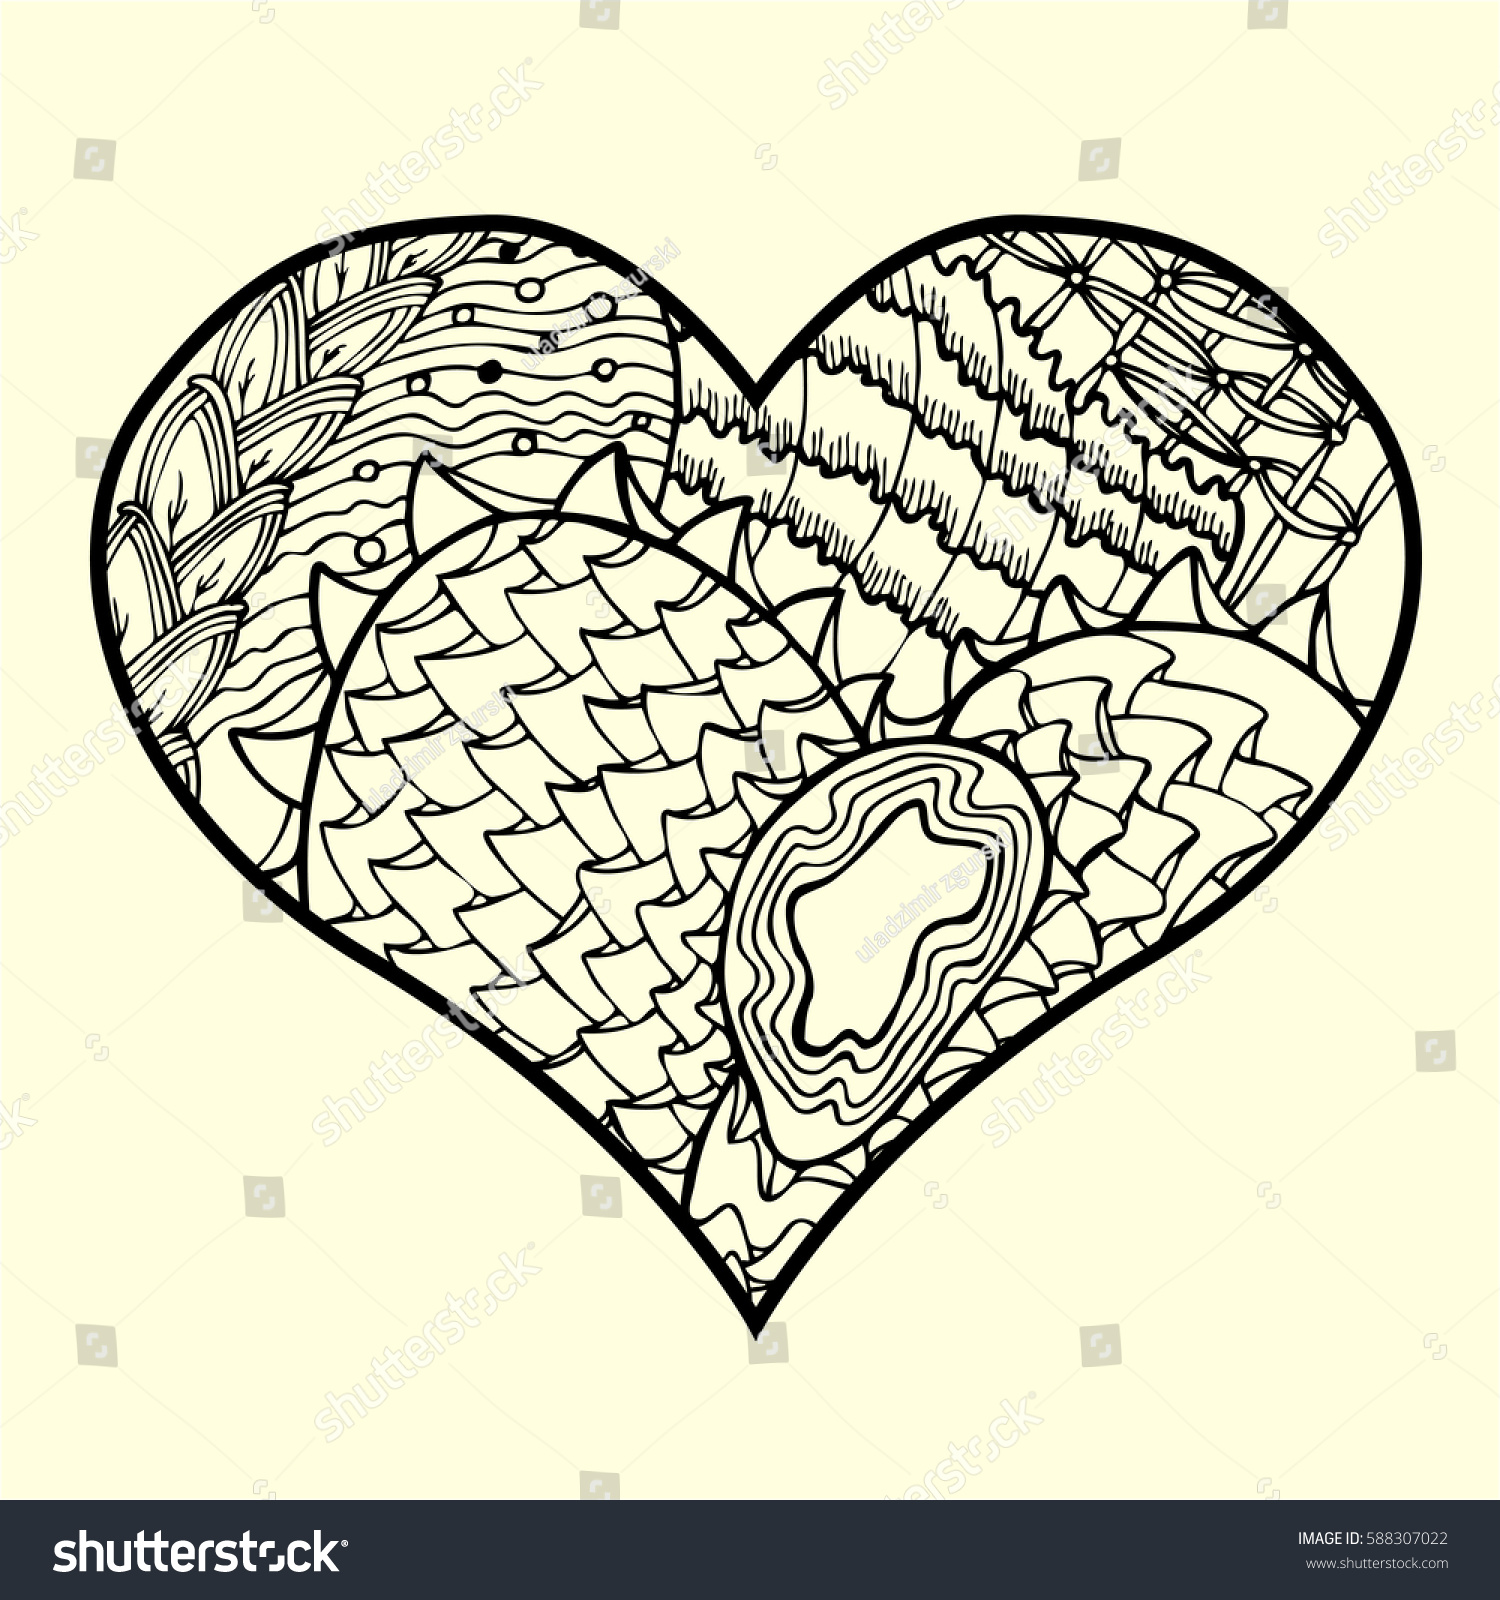 Zentangle Heart Abstract Floral Pattern Inside Stock Vector (Royalty ...